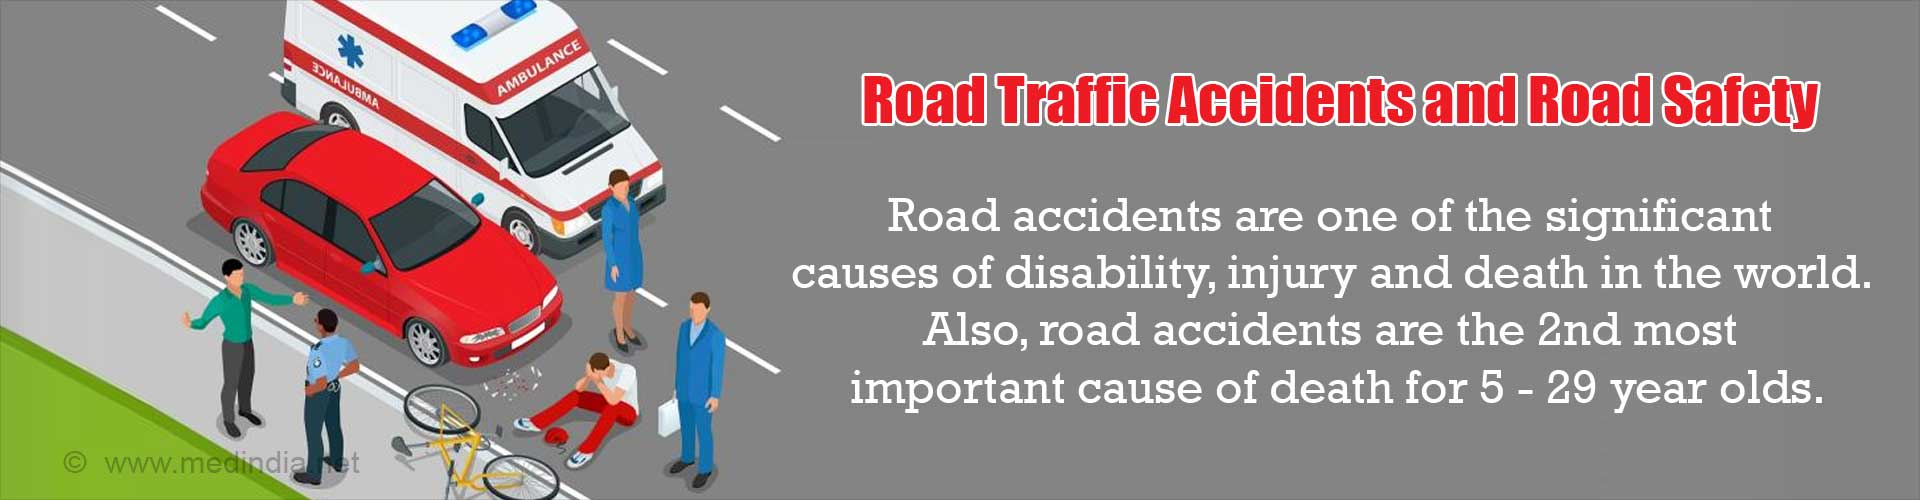 Road Traffic Accidents and Road Safety